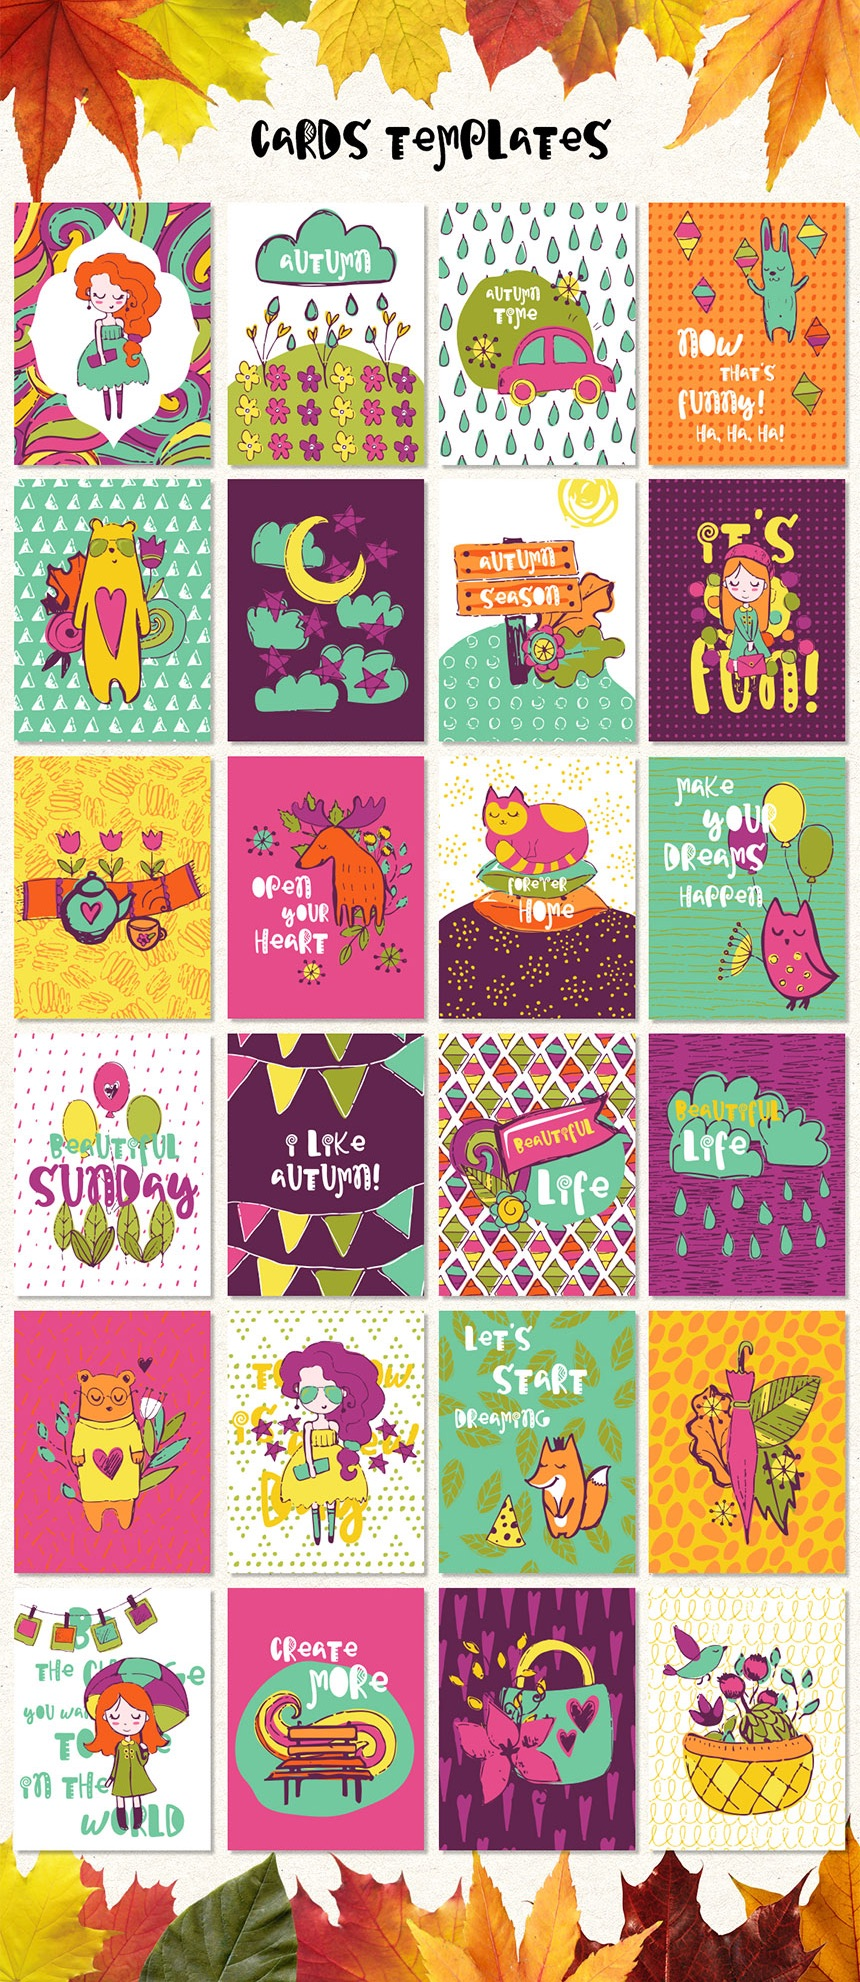 http://www.mydesigndeals.com/deal/the-2016-autumn-and-halloween-mega-bundle-only-19?a=12702